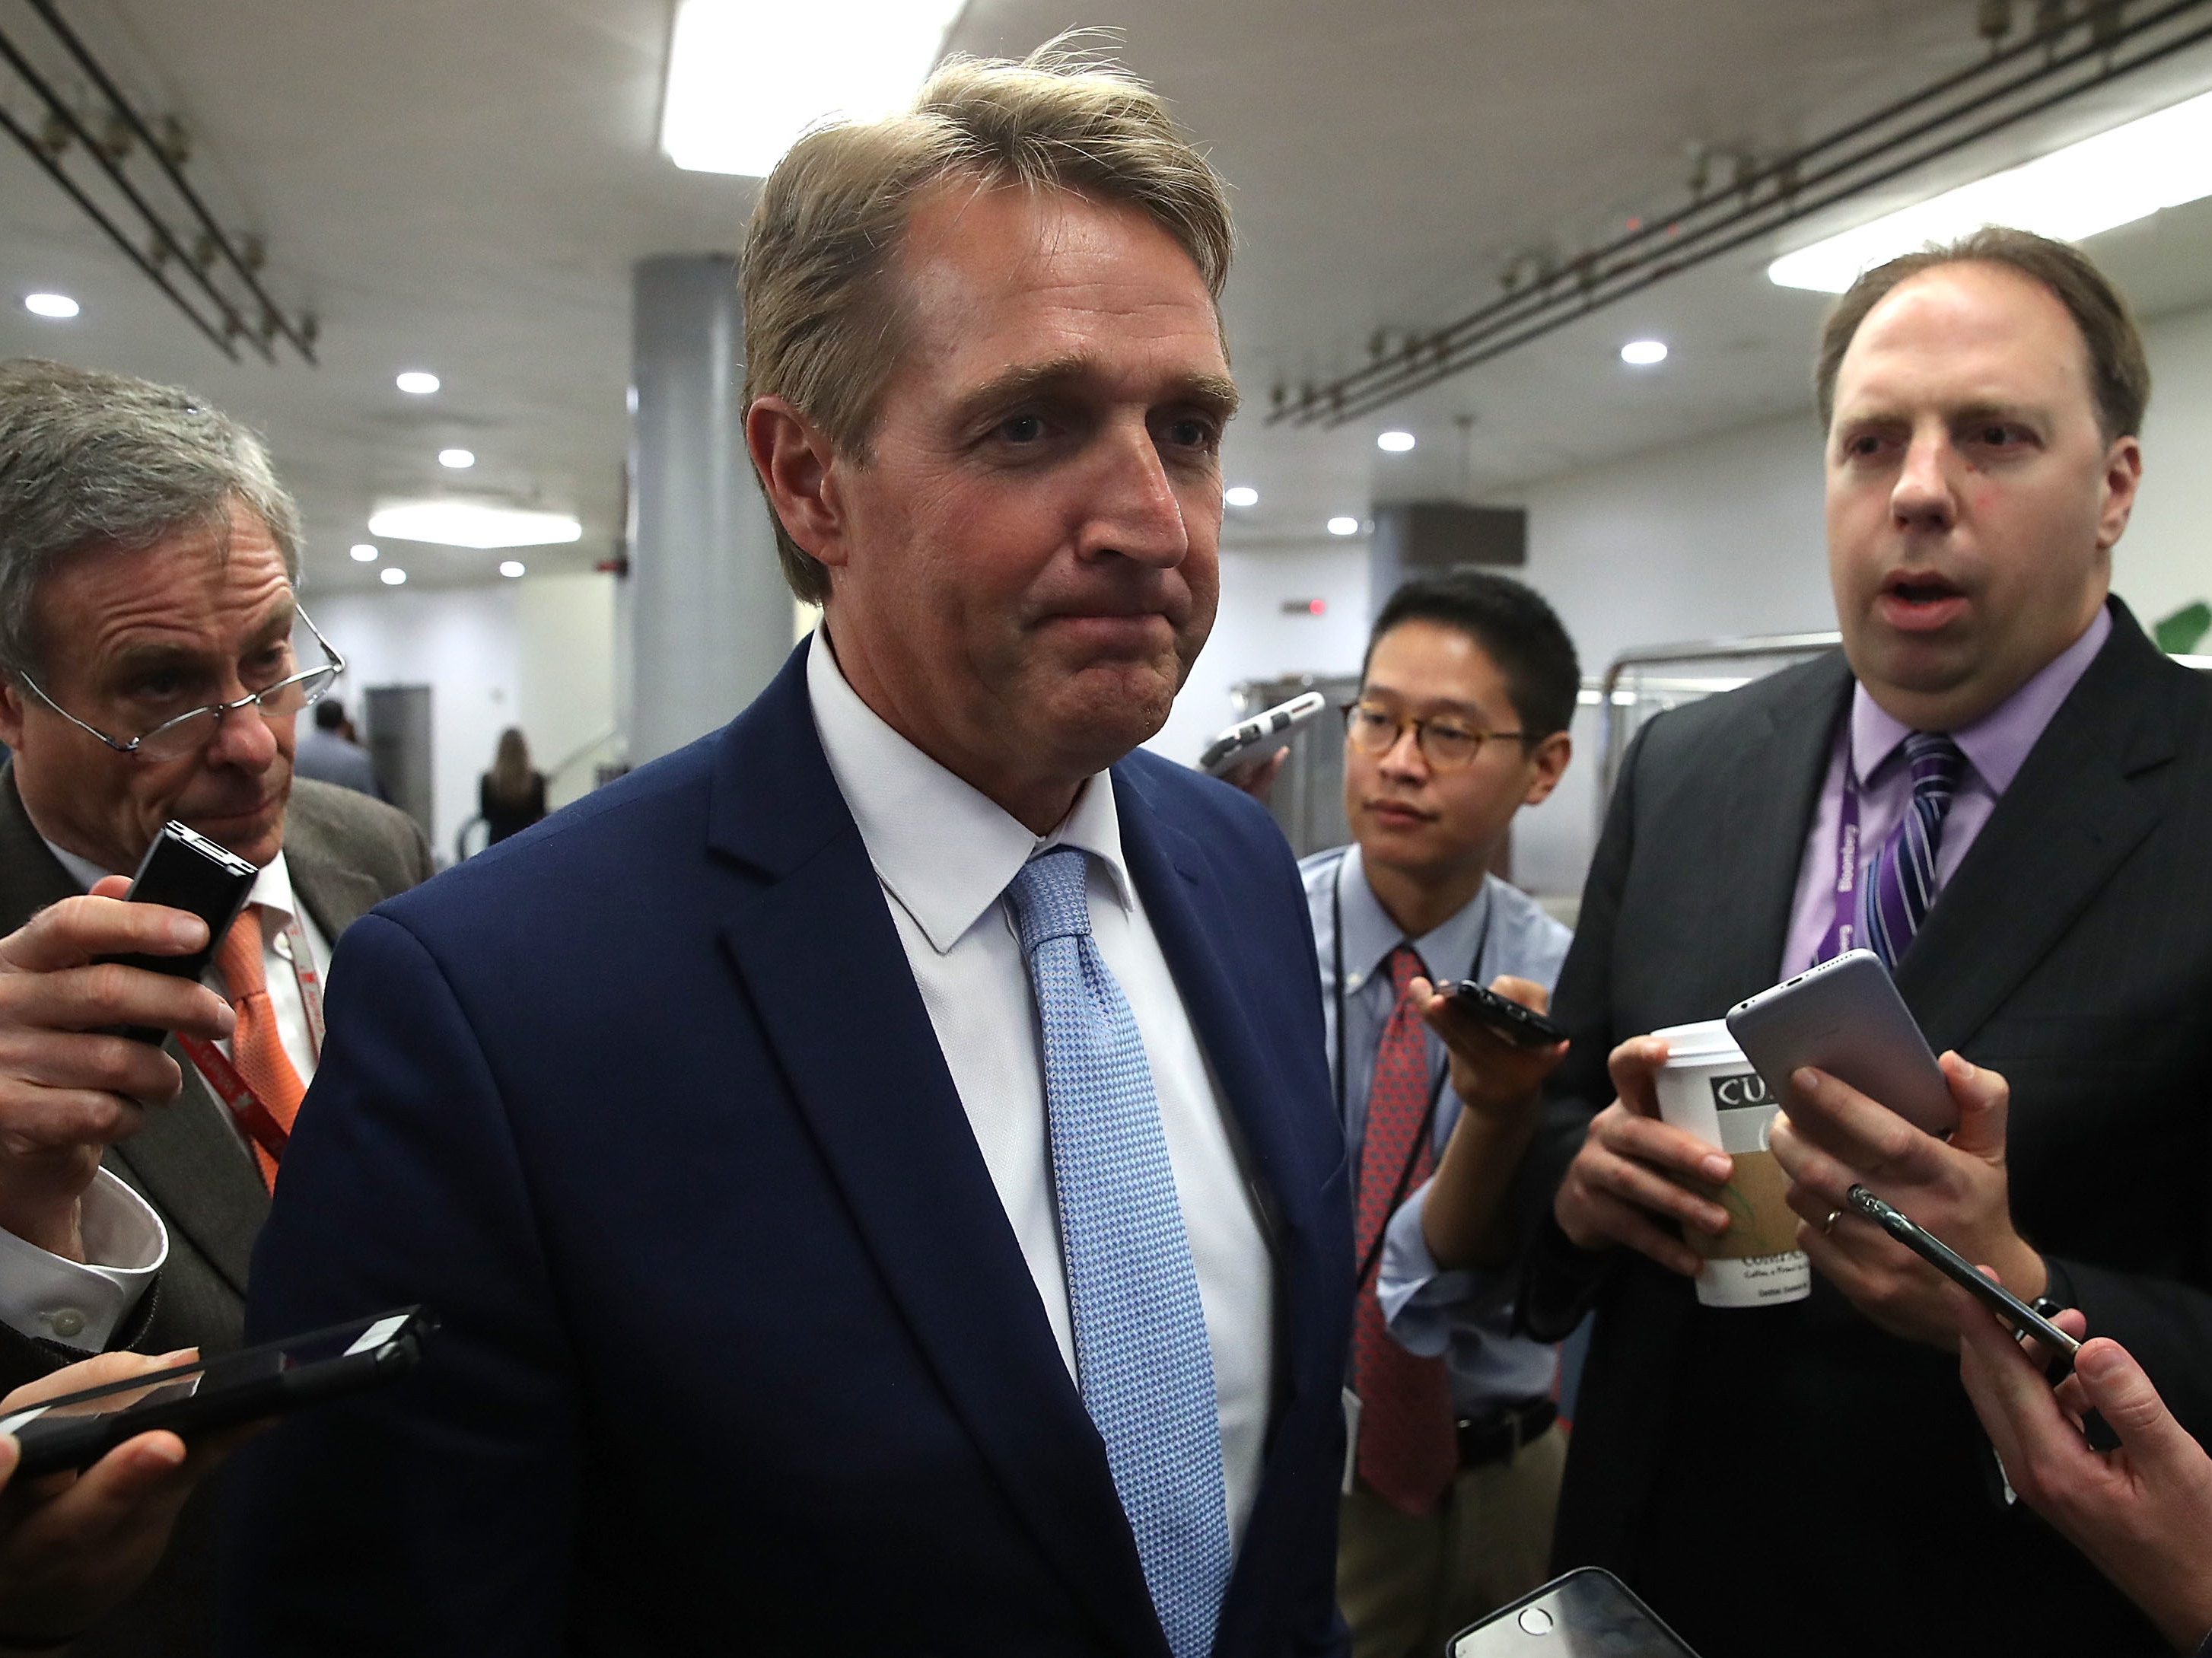 FactCheck: Flawed attack on Arizona Sen. Jeff Flake